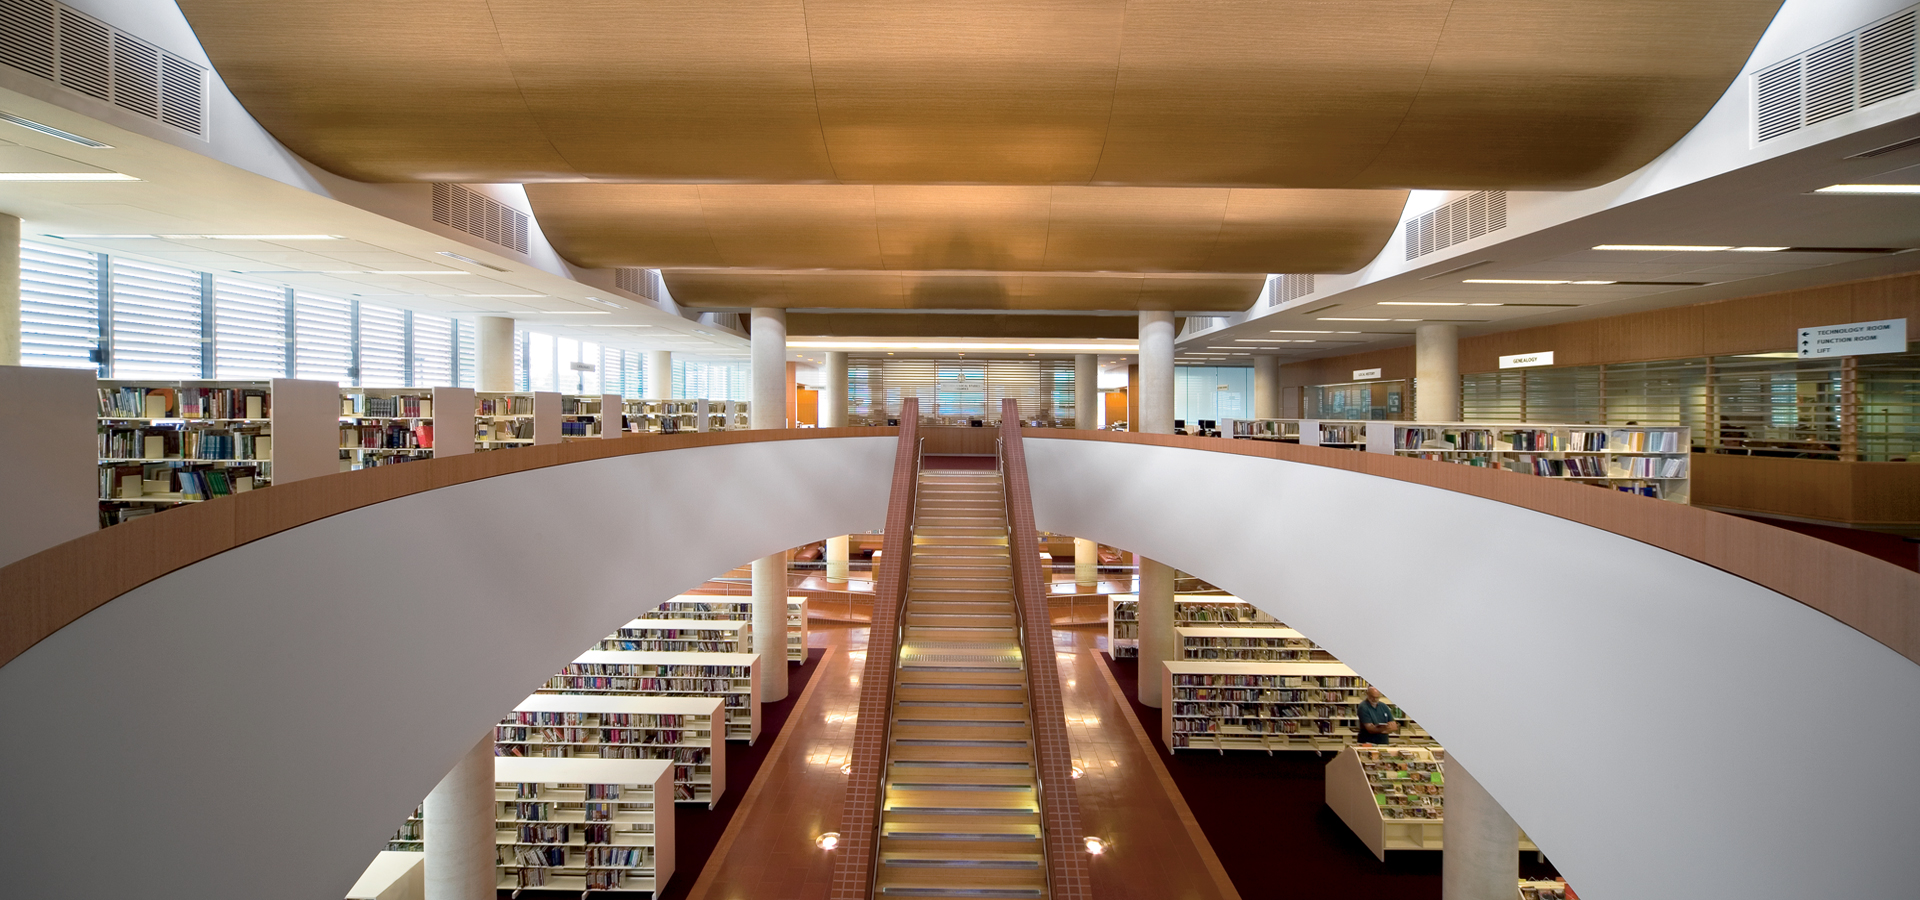 Max Webber Library designed by fjmt